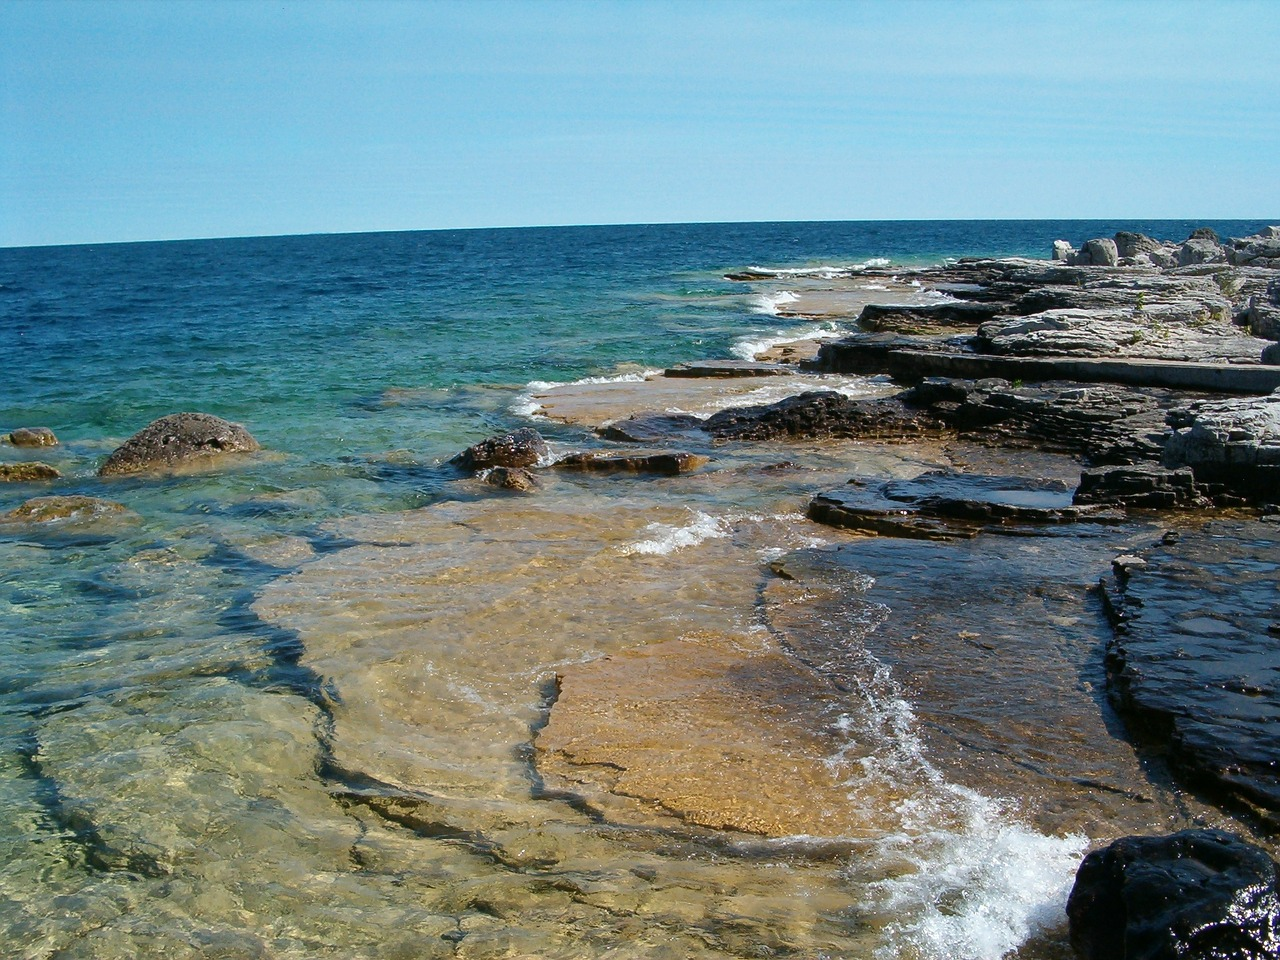 Rocky shores of Bruce Peninsula National Park, Ontario, Canada